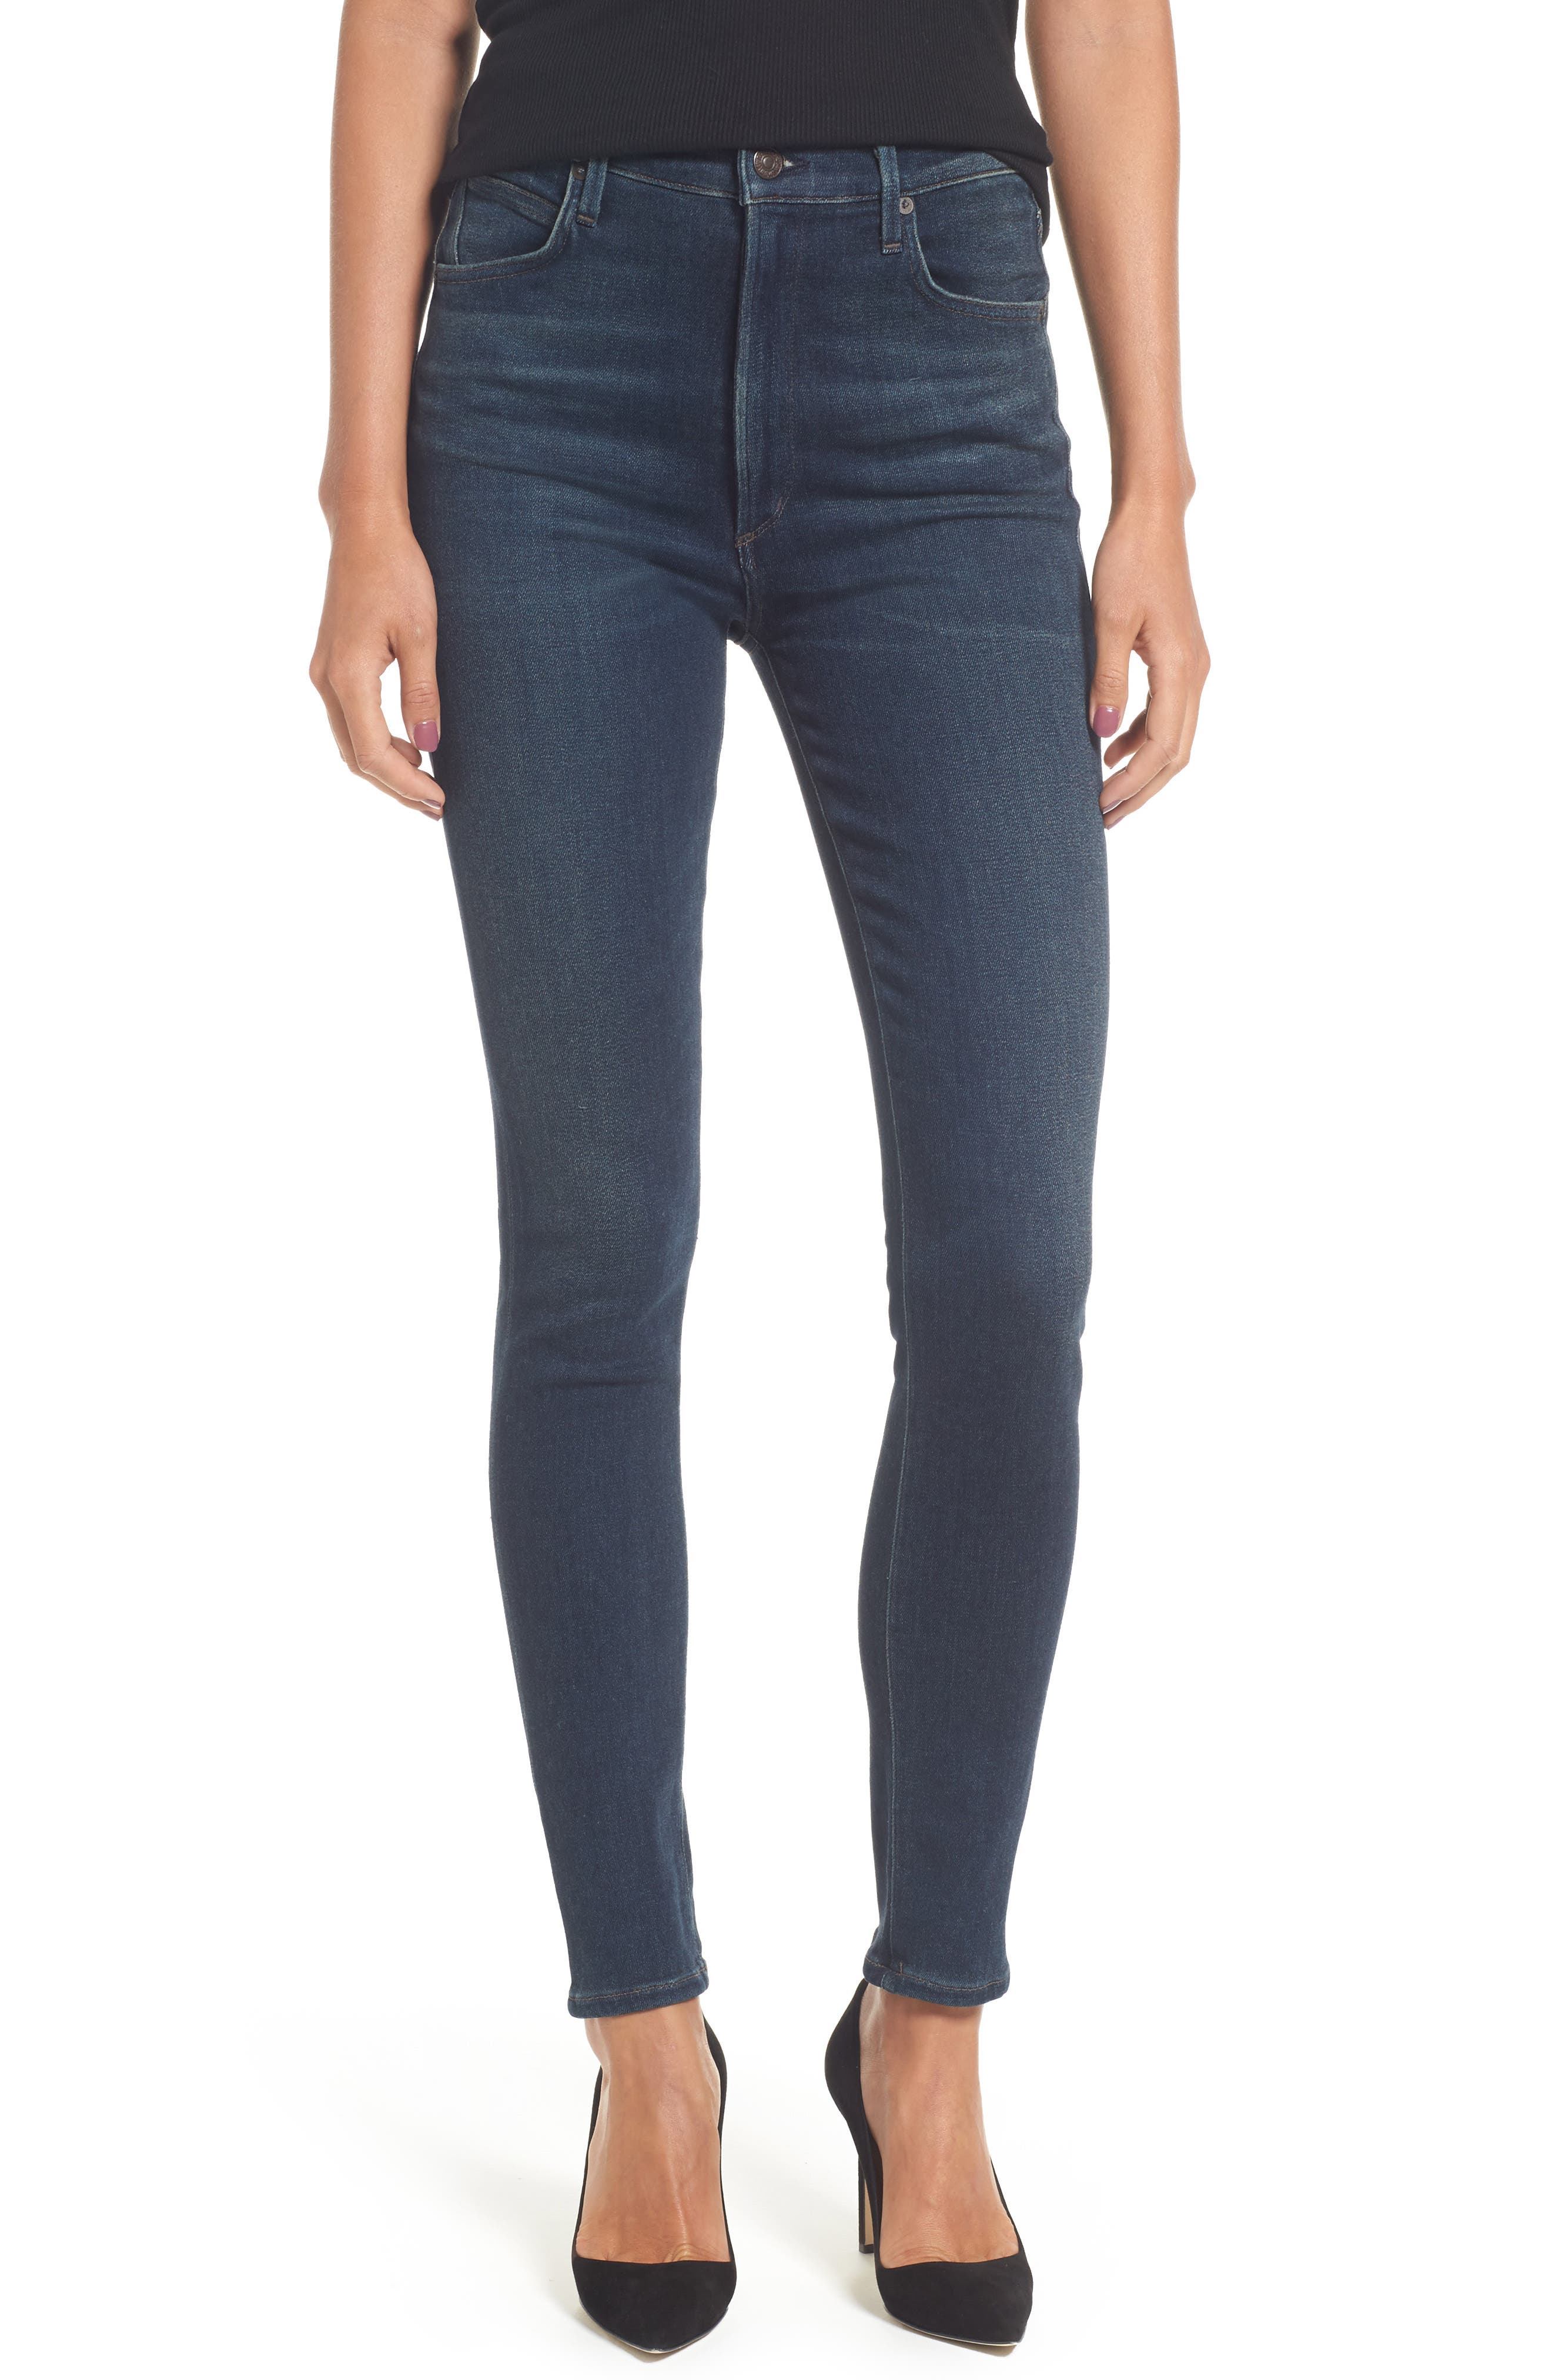 Alternate Image 1 Selected - Citizens of Humanity Chrissy High Waist Skinny Jeans (Haze)